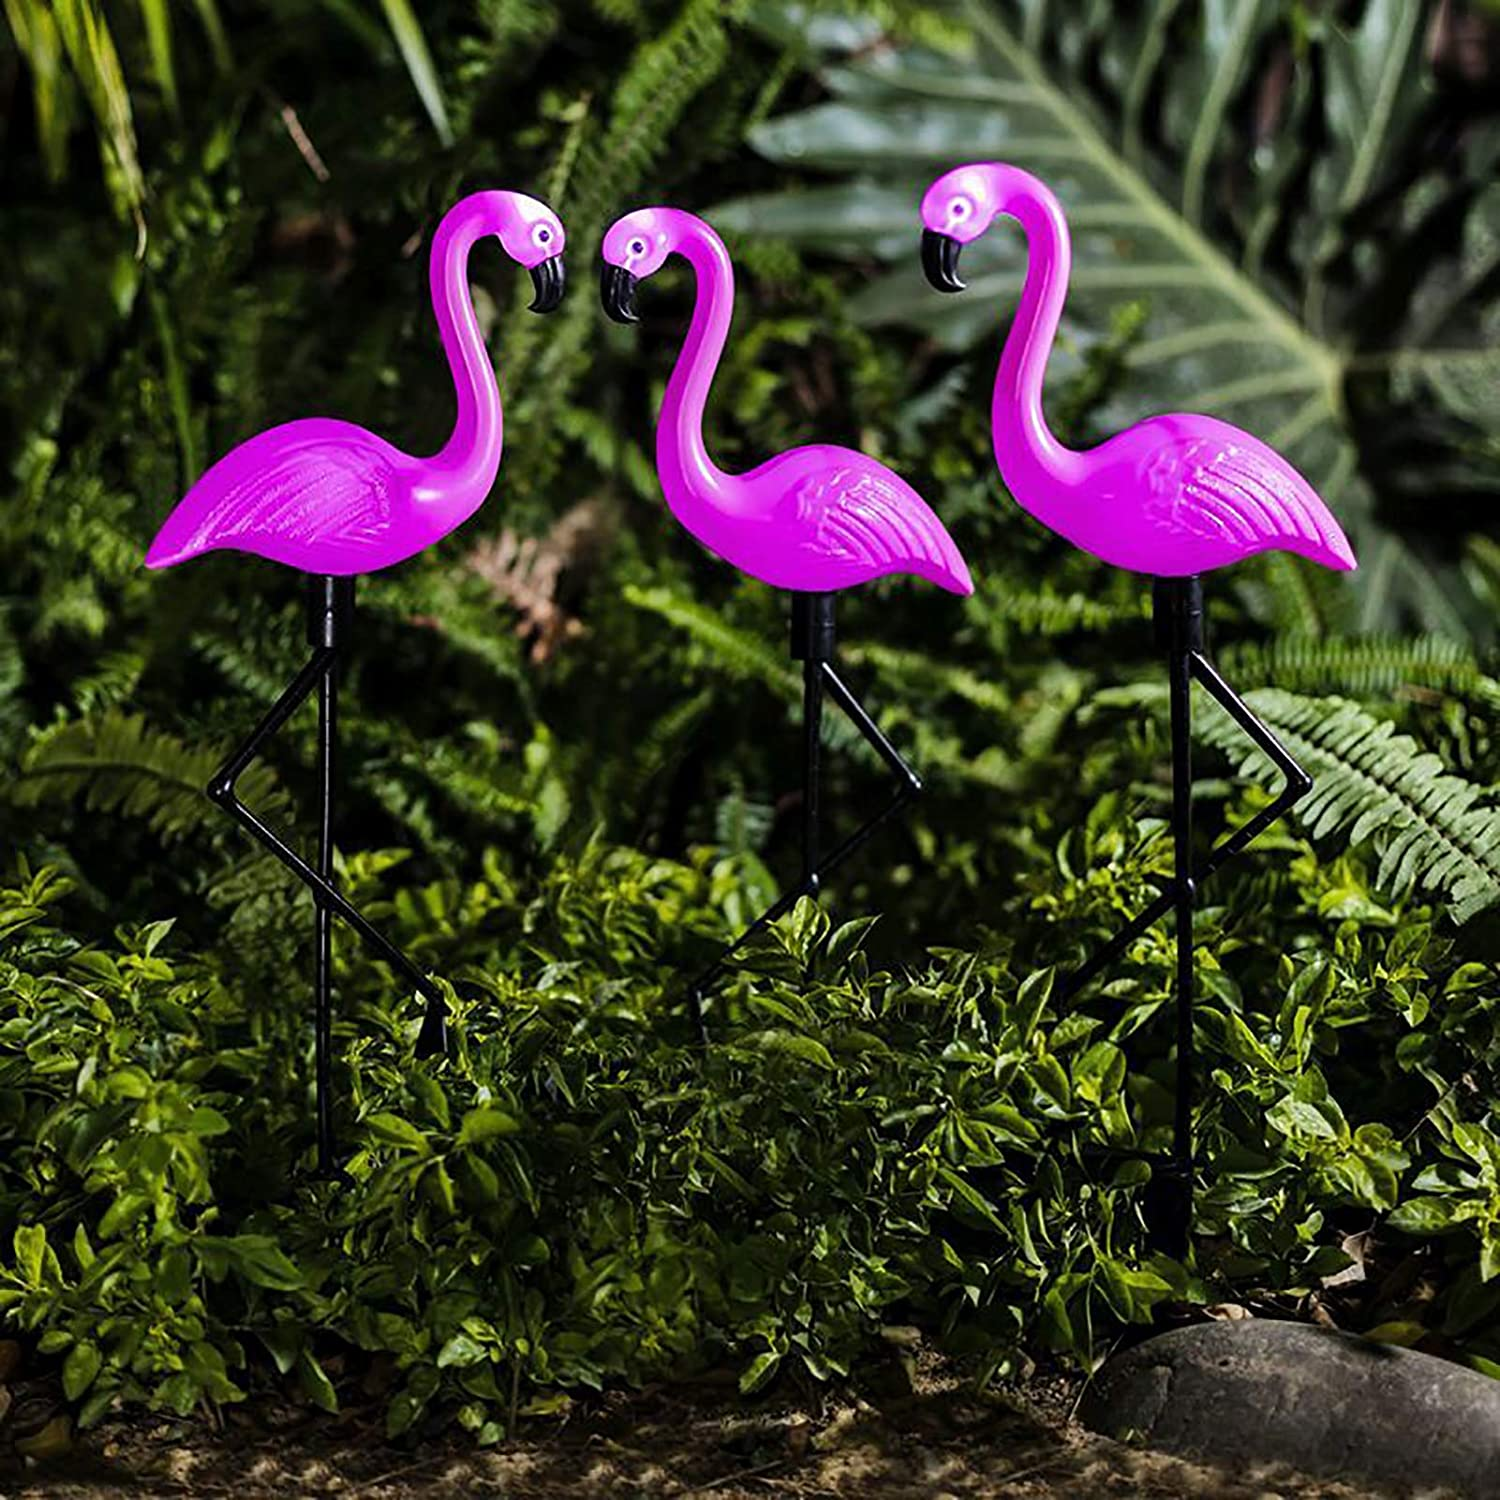 SESERIA Garden Outdoor Solar Lights, 3Pack Flamingo Led Stake Light Solar Powered Waterproof Pathway Lawn Yard Landscape Path Decorative Lights